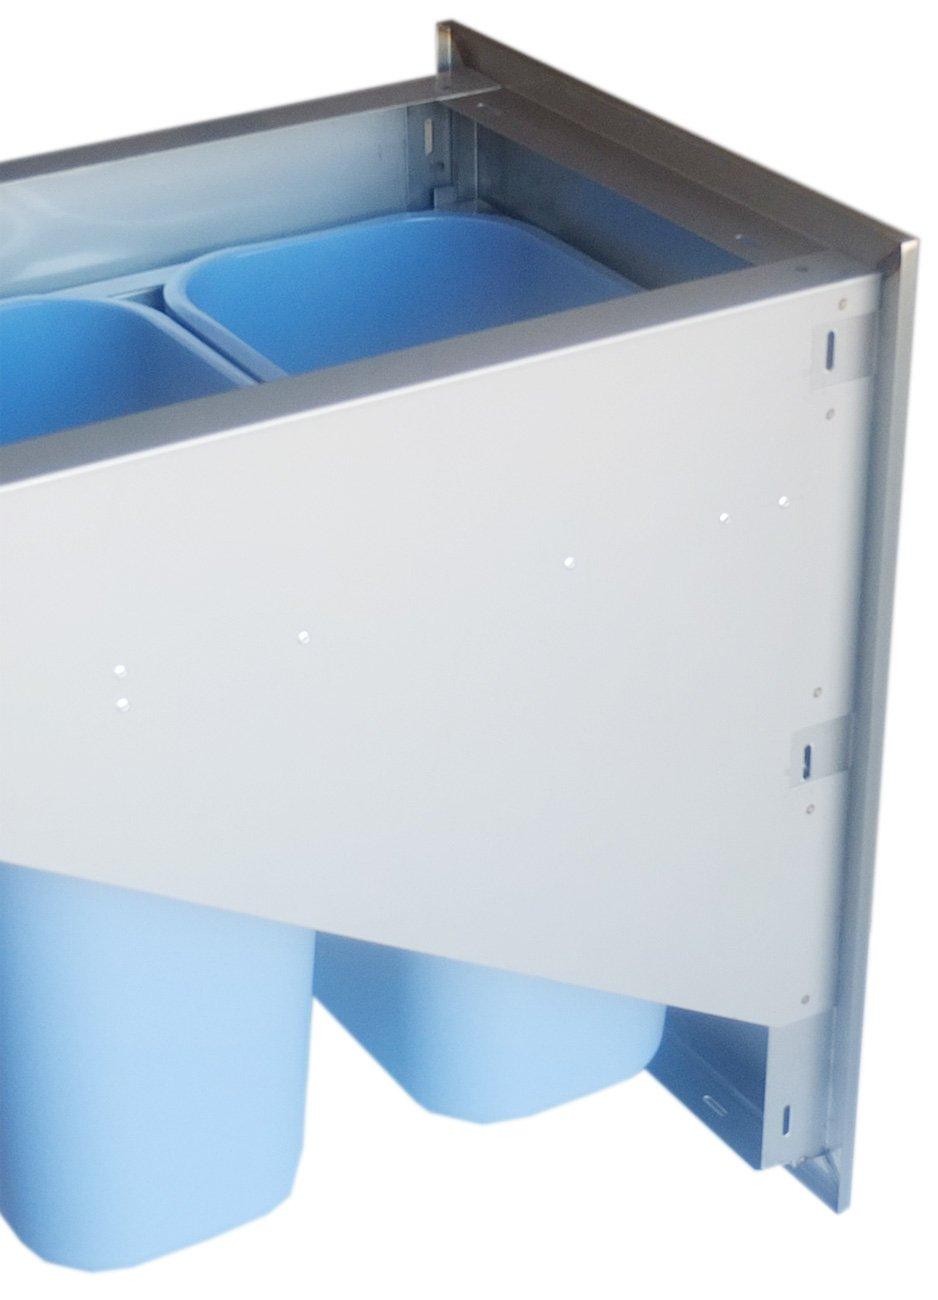 SUNSTONE BA-TRD1724 Beveled Frame Drawer with Two Trash Bins, 17 by 24'' by SUNSTONE (Image #3)